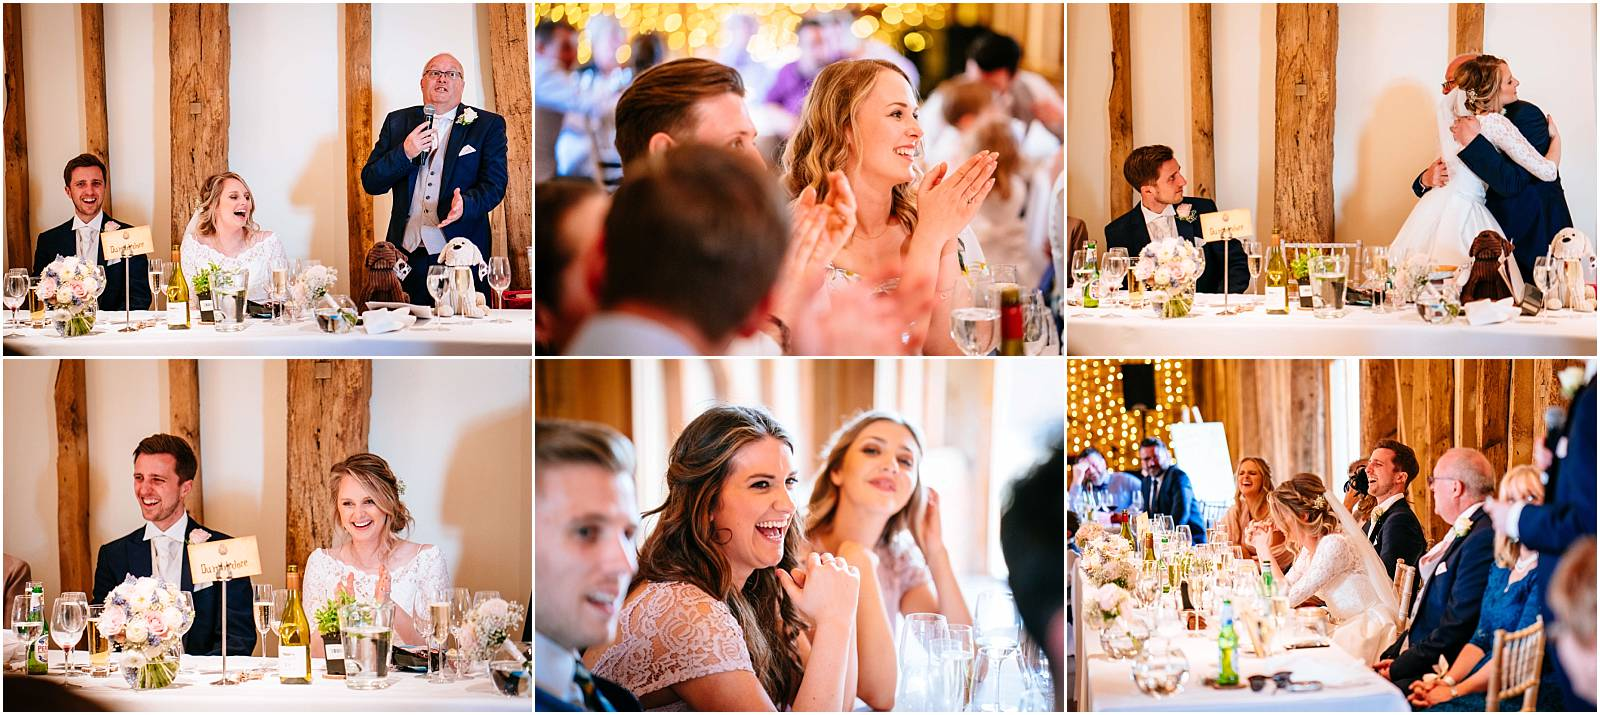 wedding guest and speeches